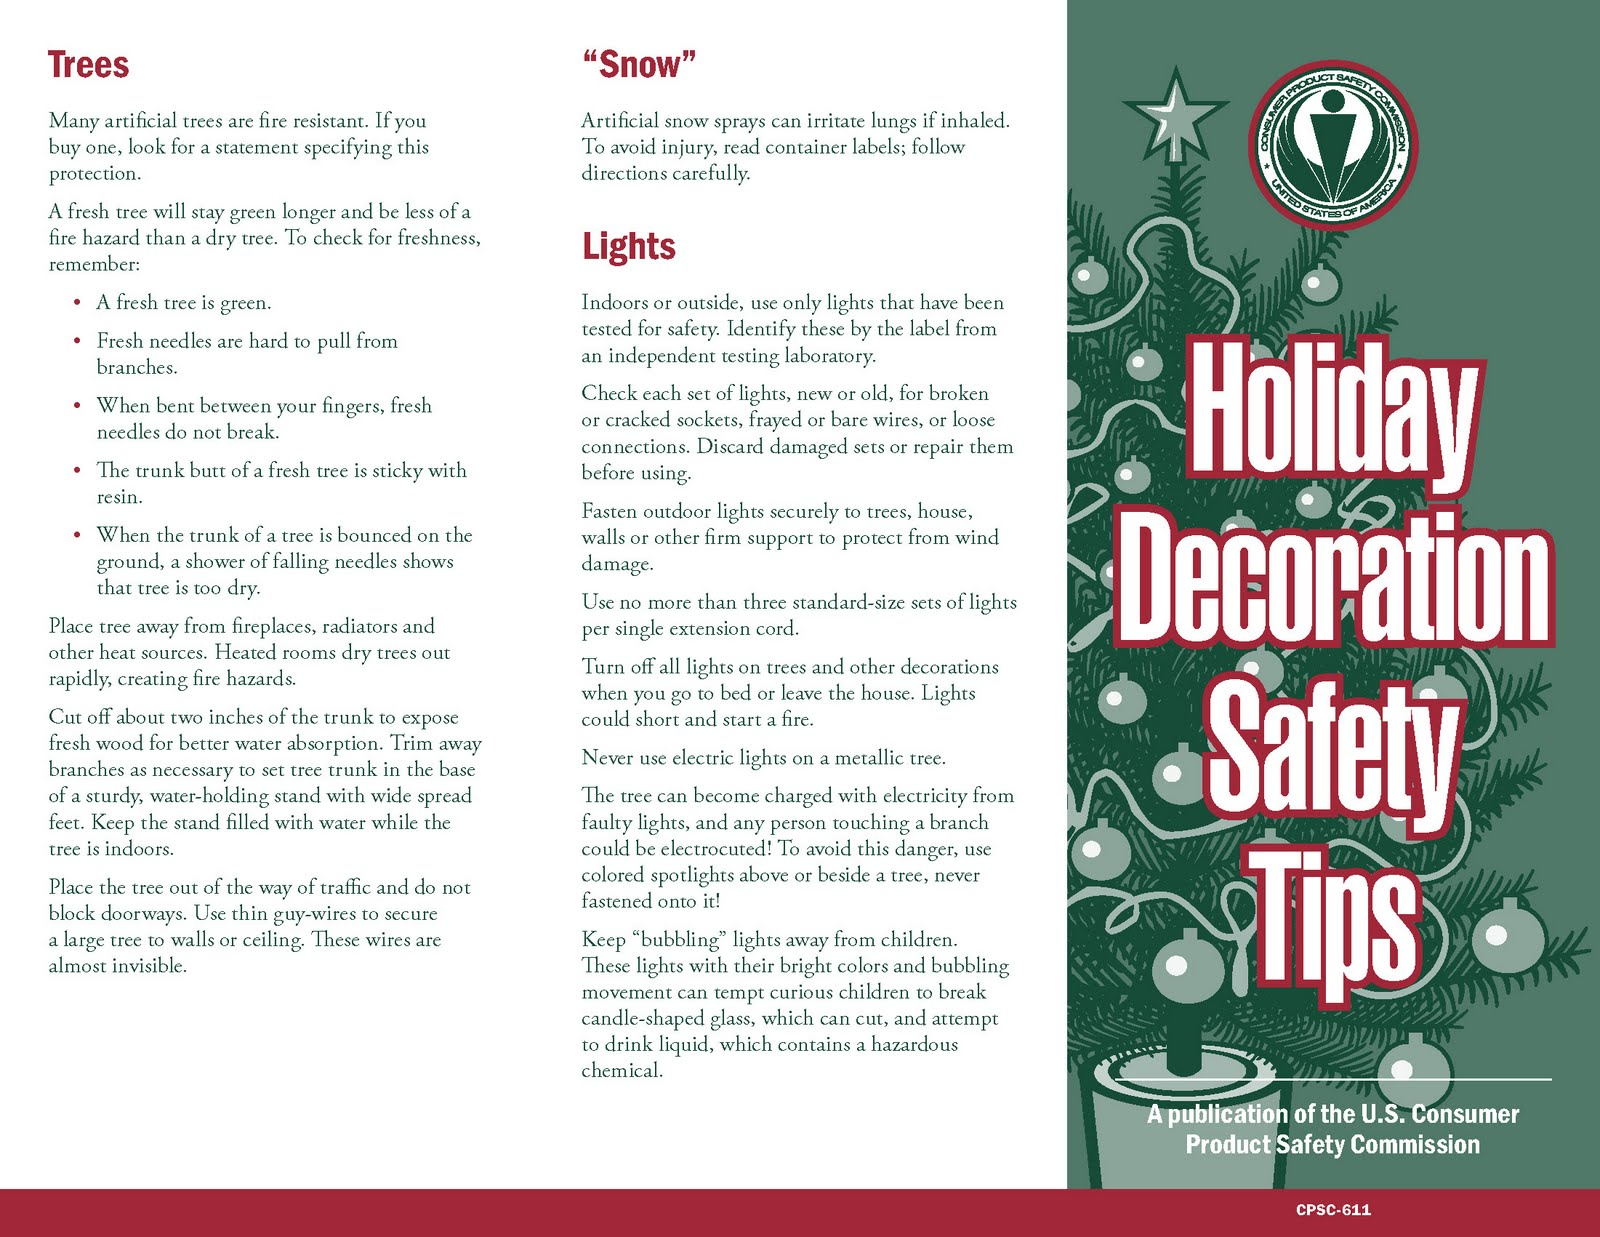 Christmas Decorating Safety | Holliday Decorations